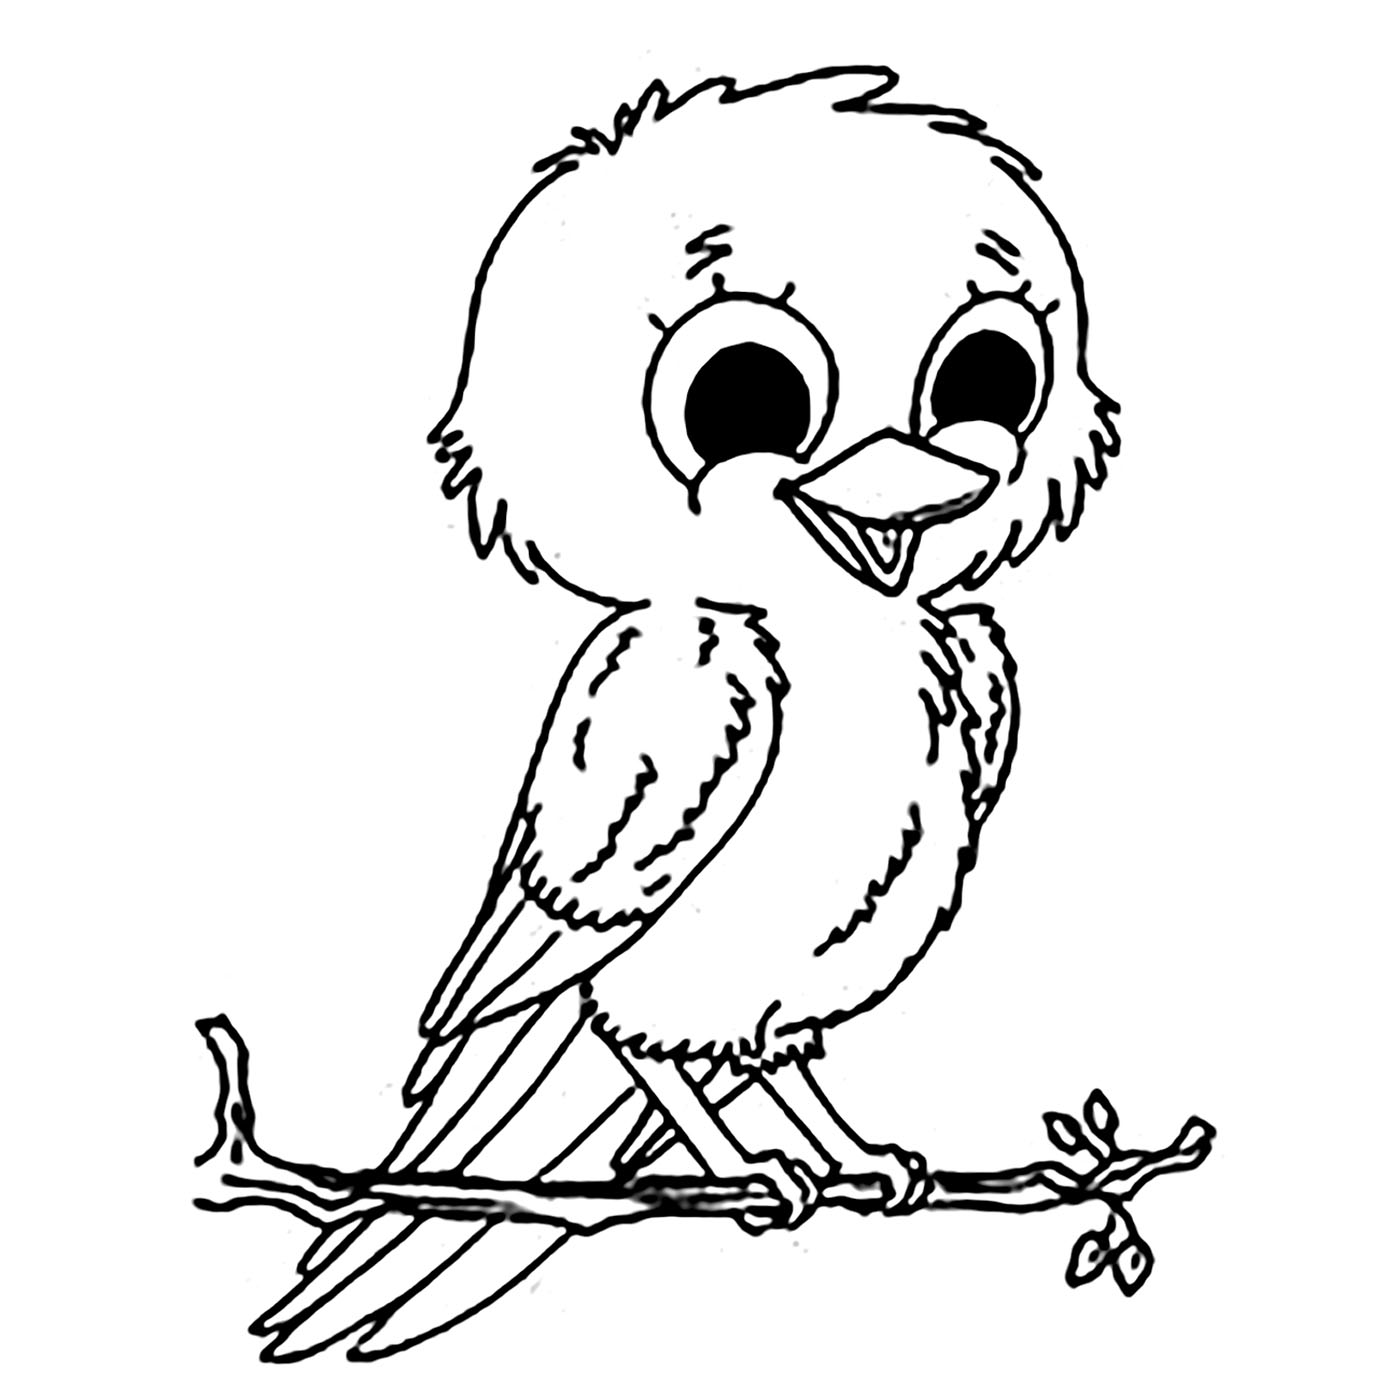 bird coloring pages kids bird coloring pages kids coloring bird pages